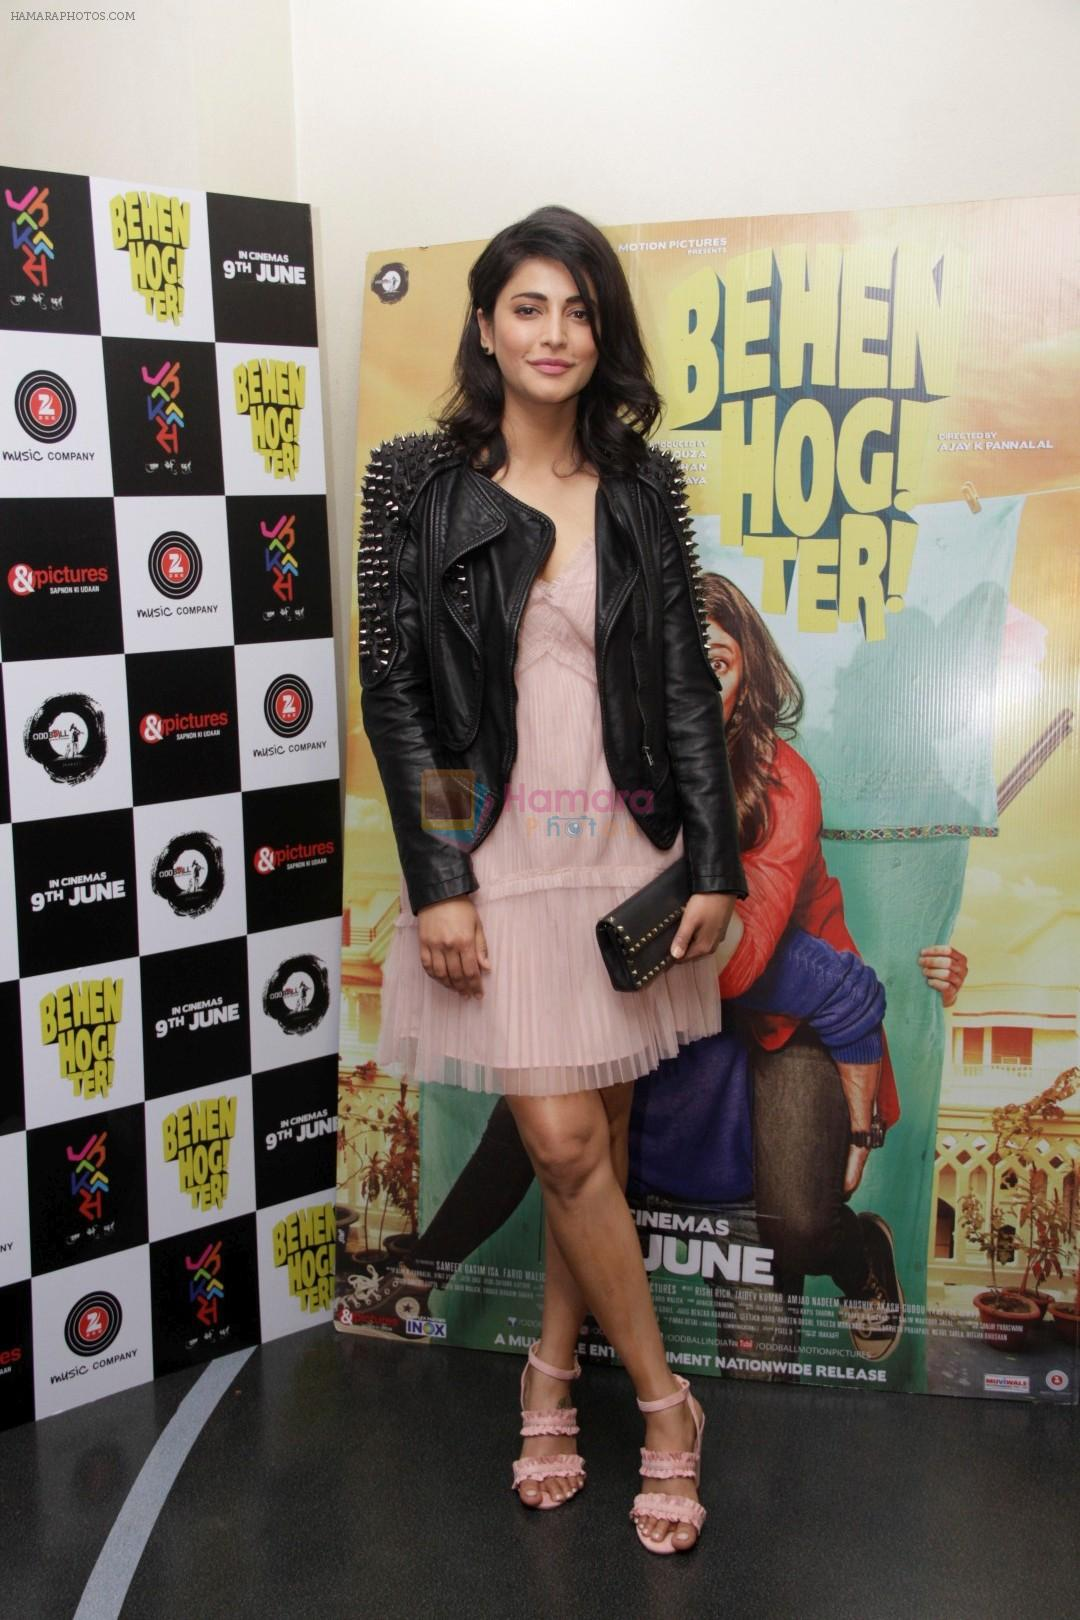 Shruti Haasan at the Special Screening Of Behen Hogi Teri on 8th June 2017